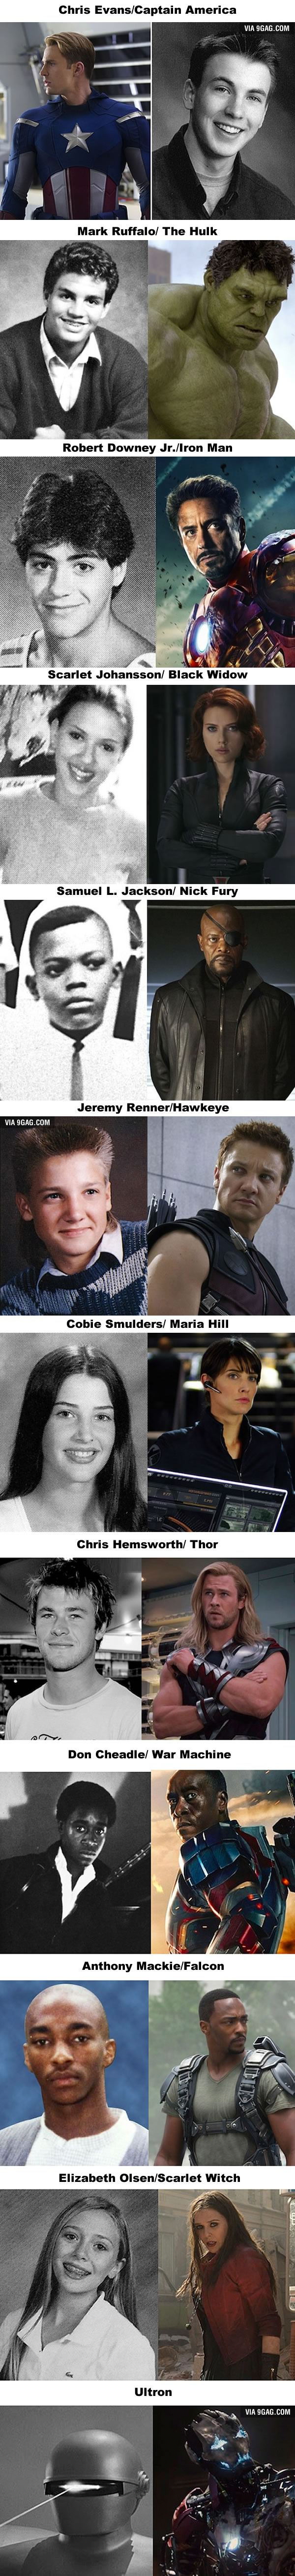 Avengers: Age of Ultron' Yearbook